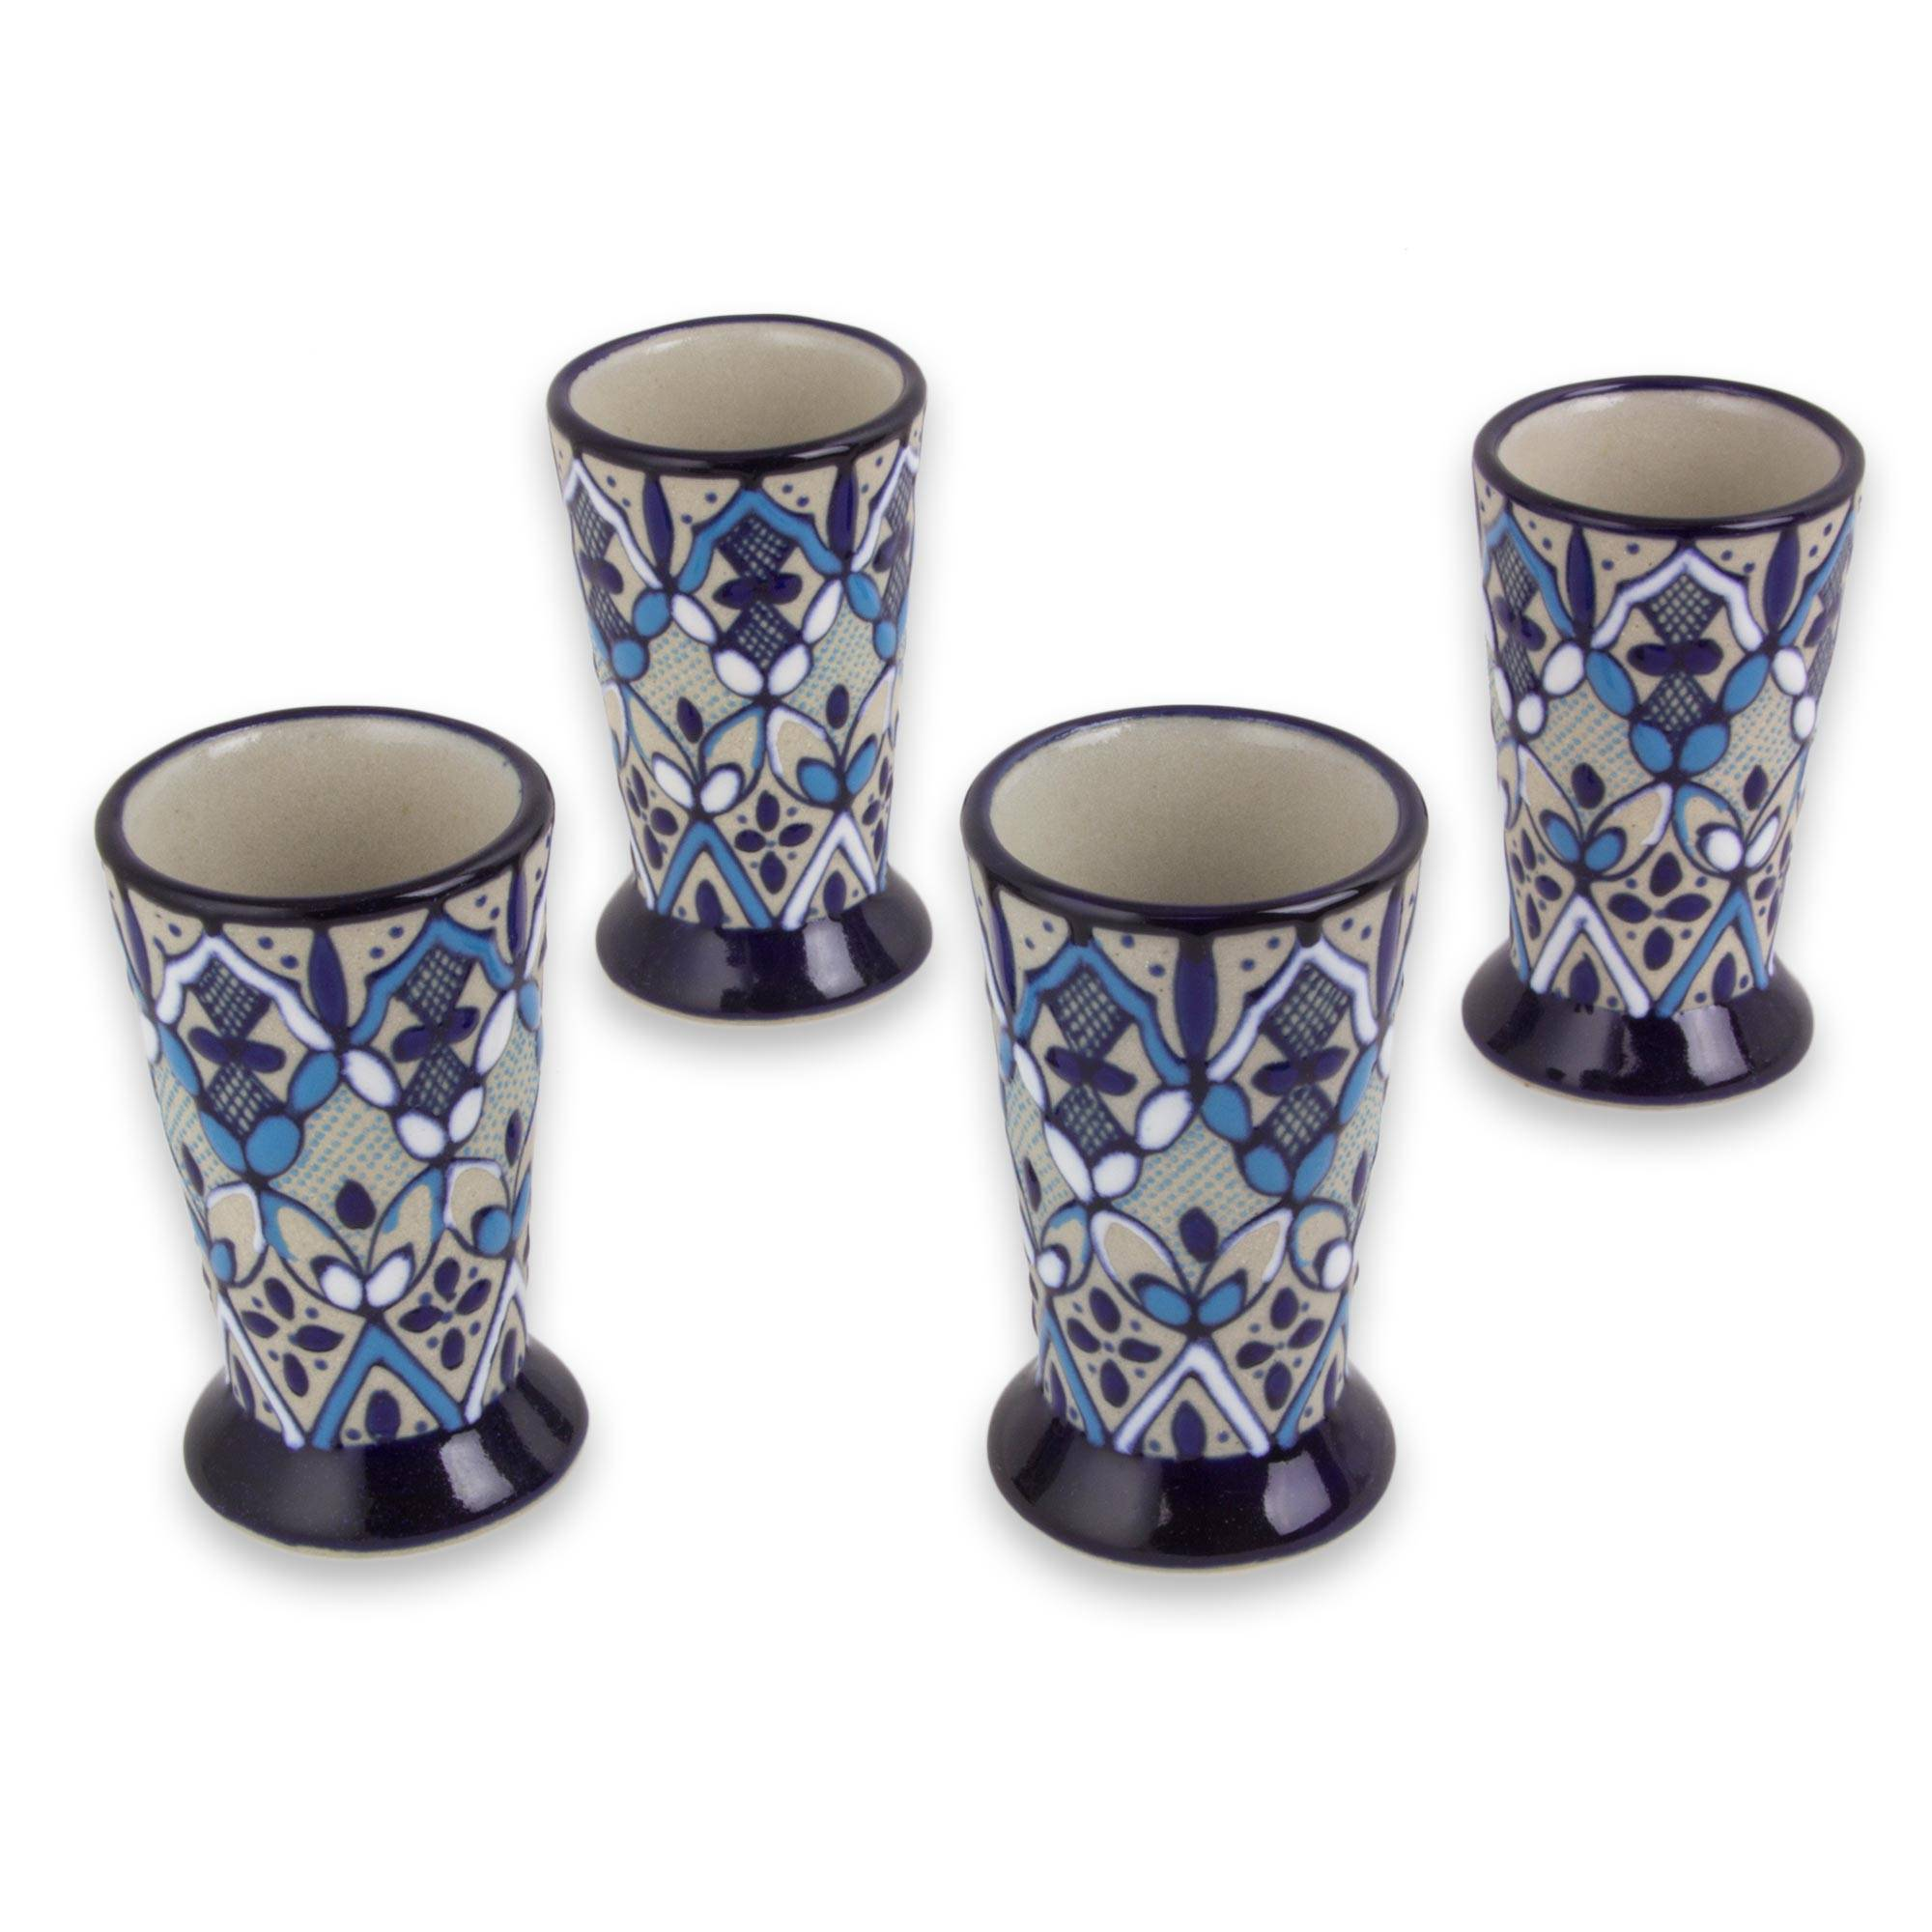 Blue Bajio Set of 4 Artisan Crafted Ceramic Tequila Shot Glasses small gift